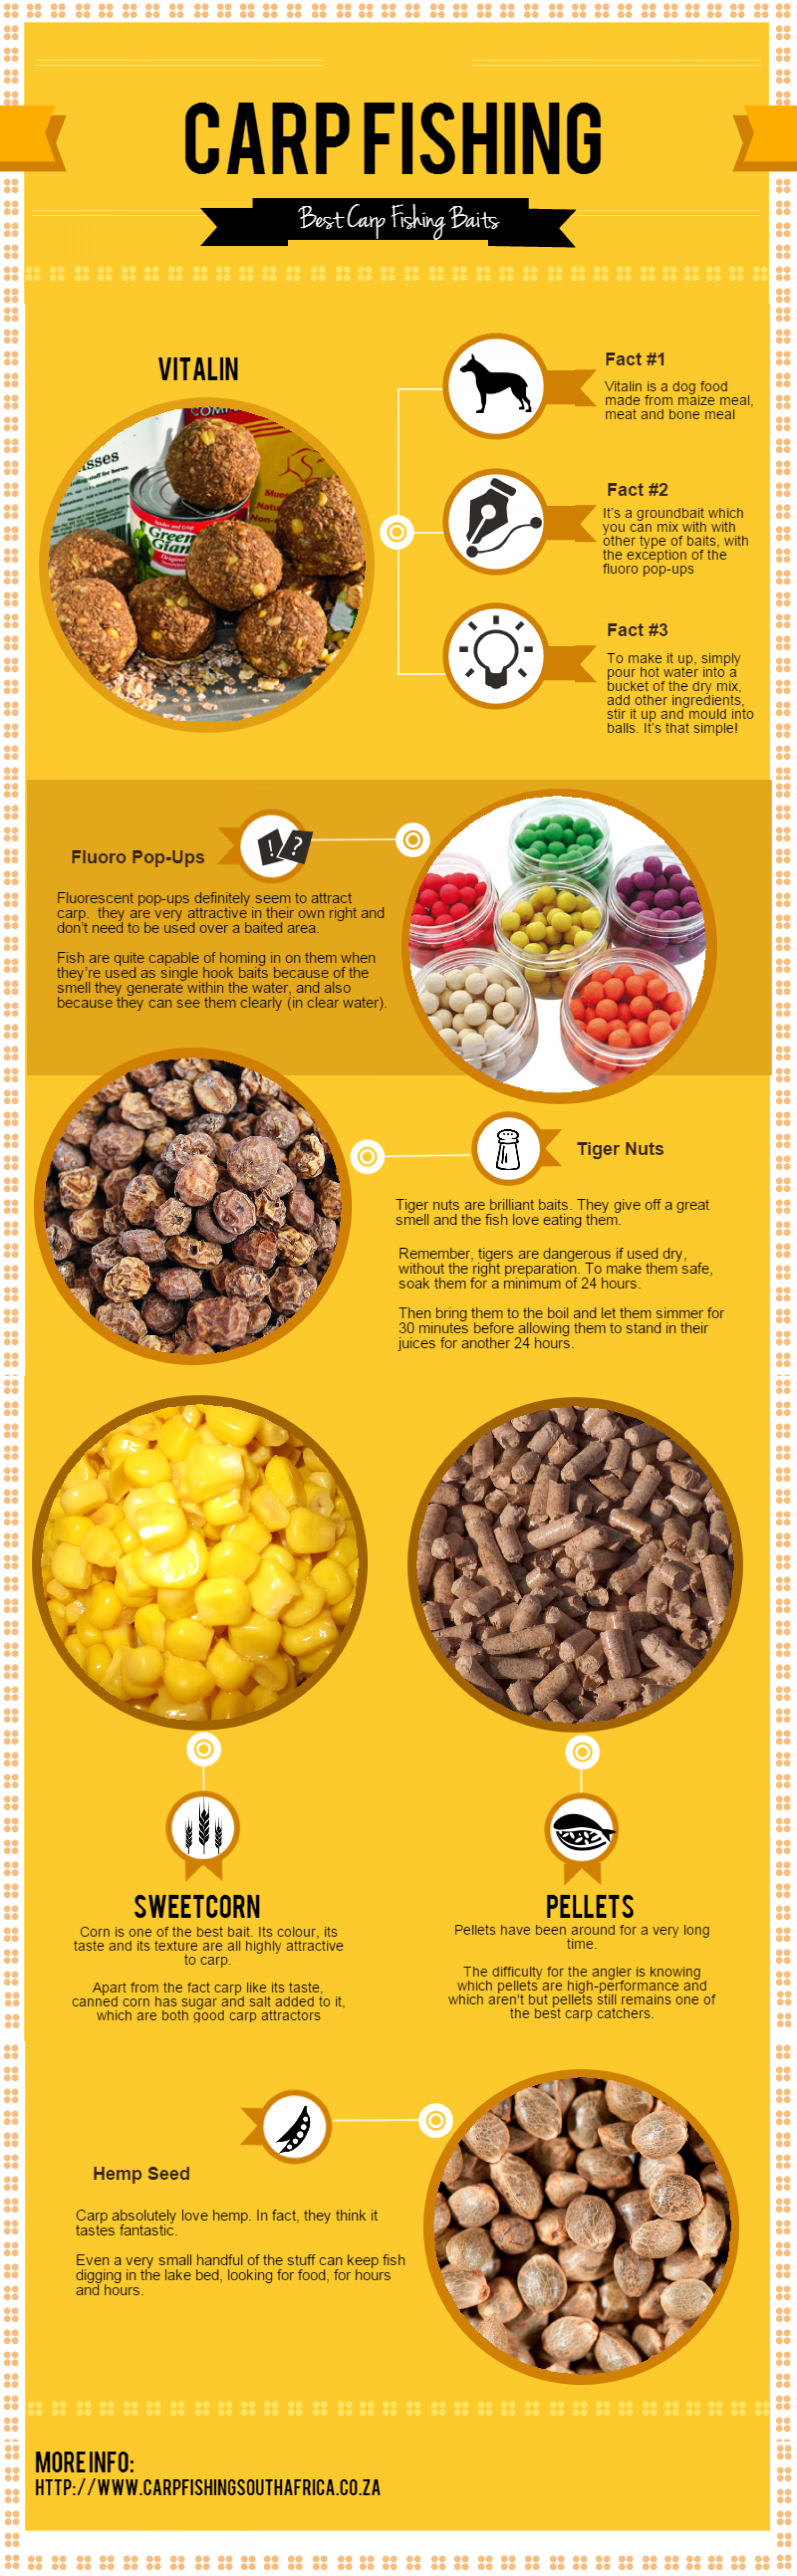 Carp Fishing - Best Carp Fishing Baits Infographic